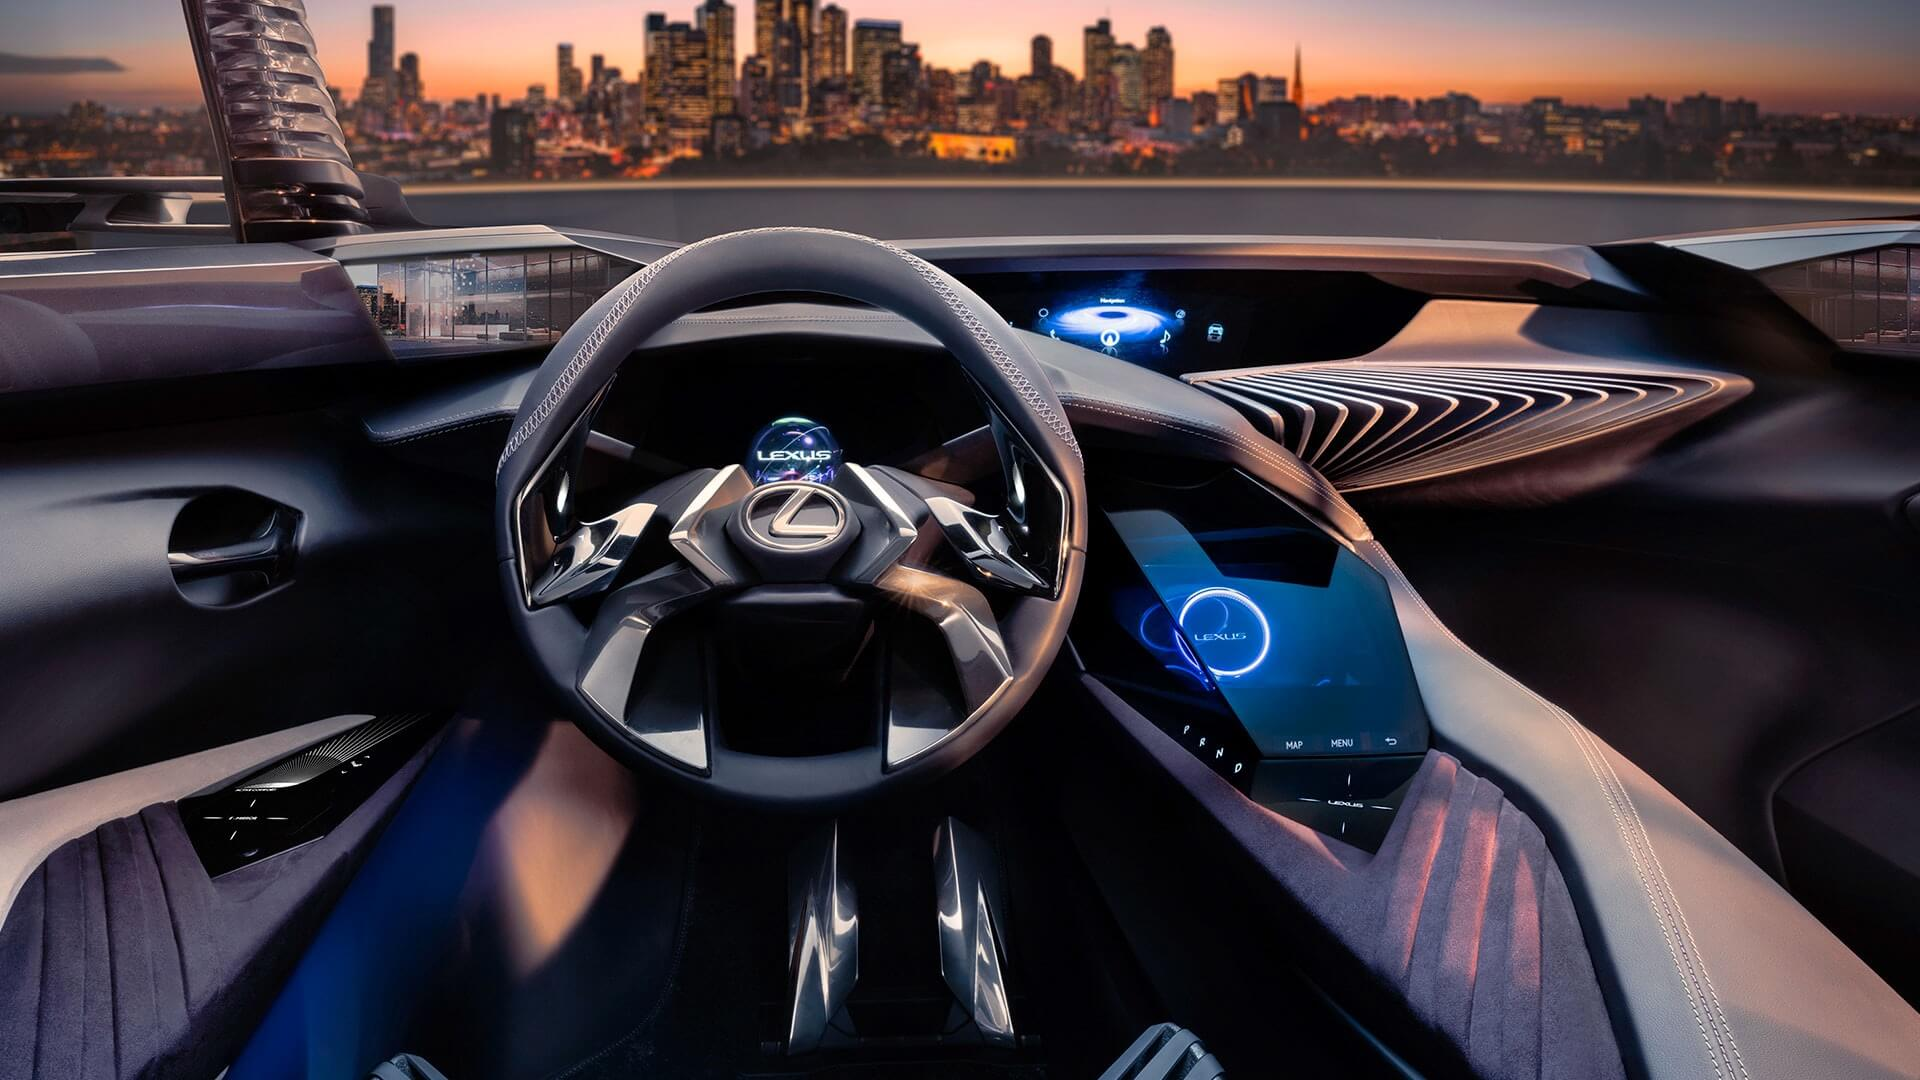 technology pioneering technology driving experience transformed